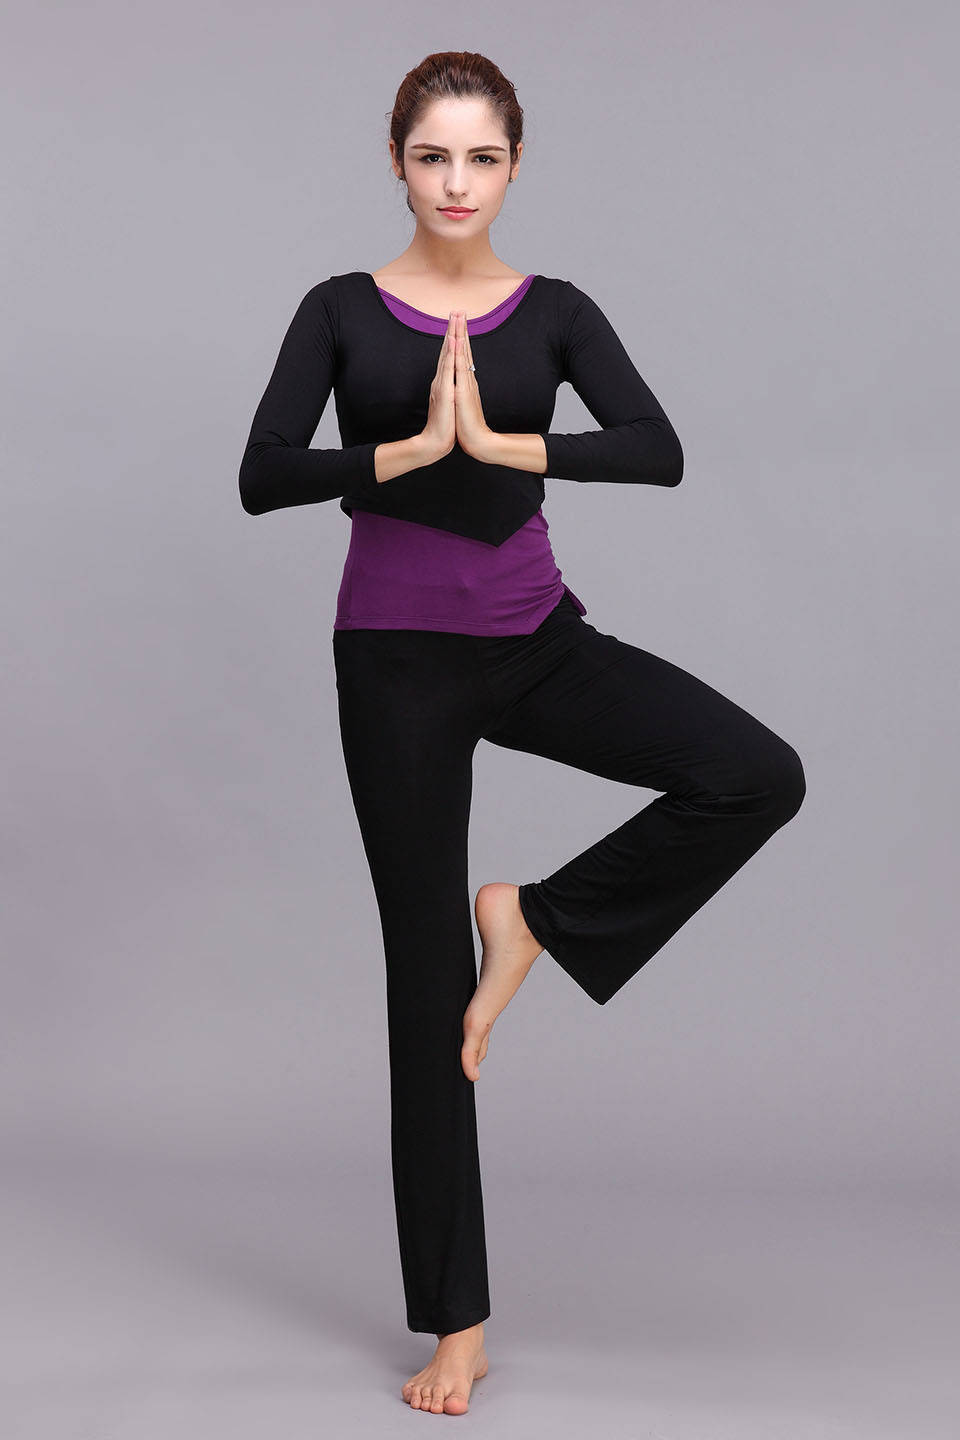 3fd0983bd326b fitness Modal women/Yoga Clothes/full sleeves/3 pcs set/pants shirts and  vest/yoga top new fashion Free shipping on Aliexpress.com | Alibaba Group